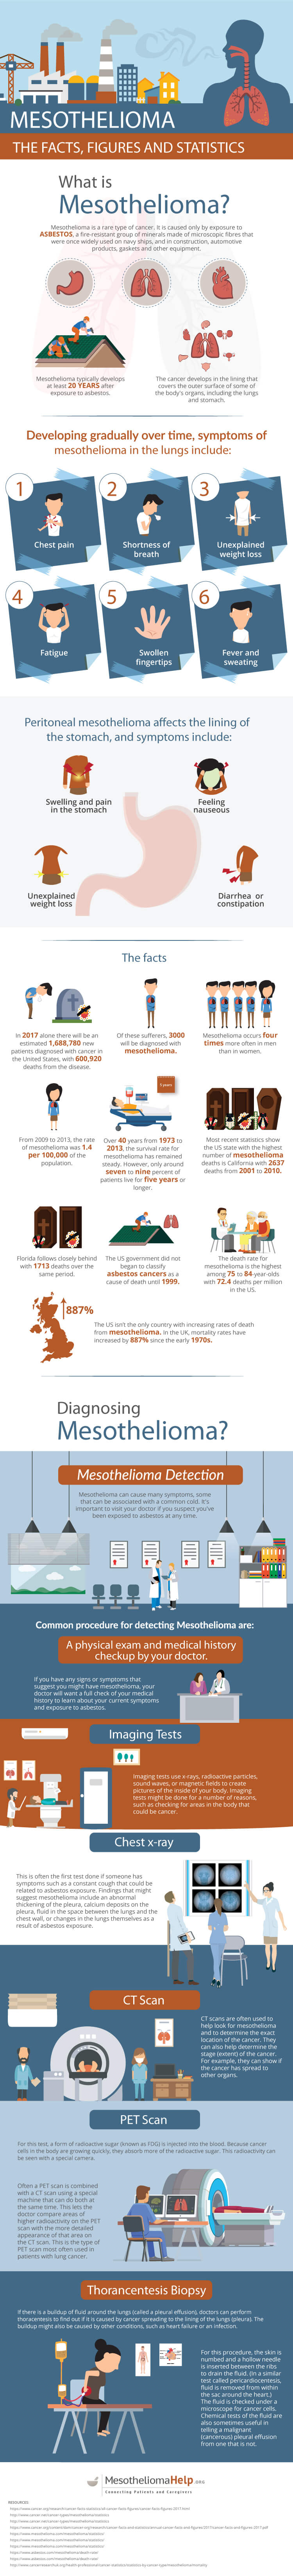 what-is-mesothelioma-infographic